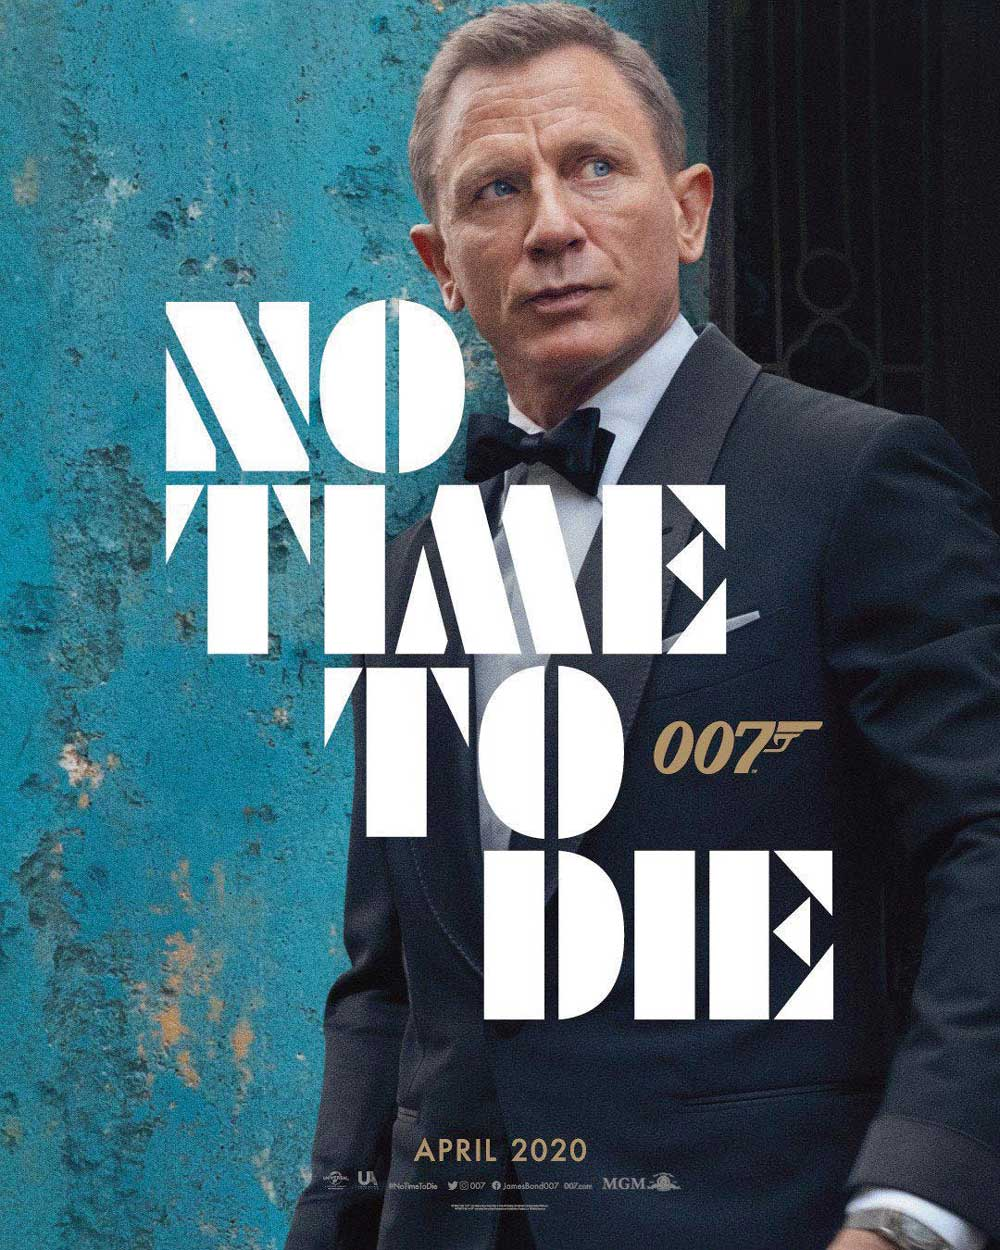 The new poster for No Time to Die